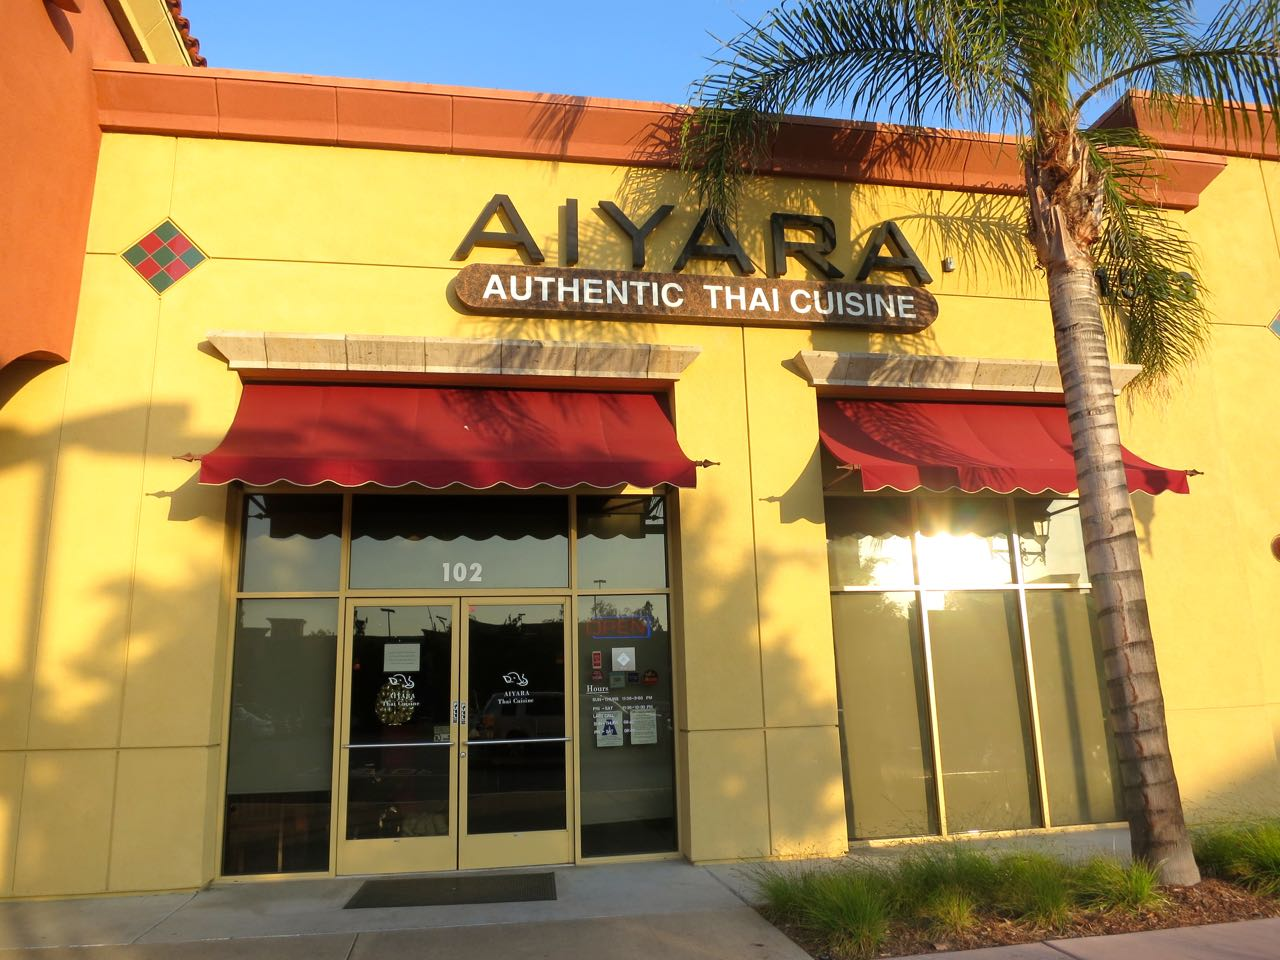 The veracious vegan aiyara thai temecula ca for Aiyara thai cuisine temecula ca